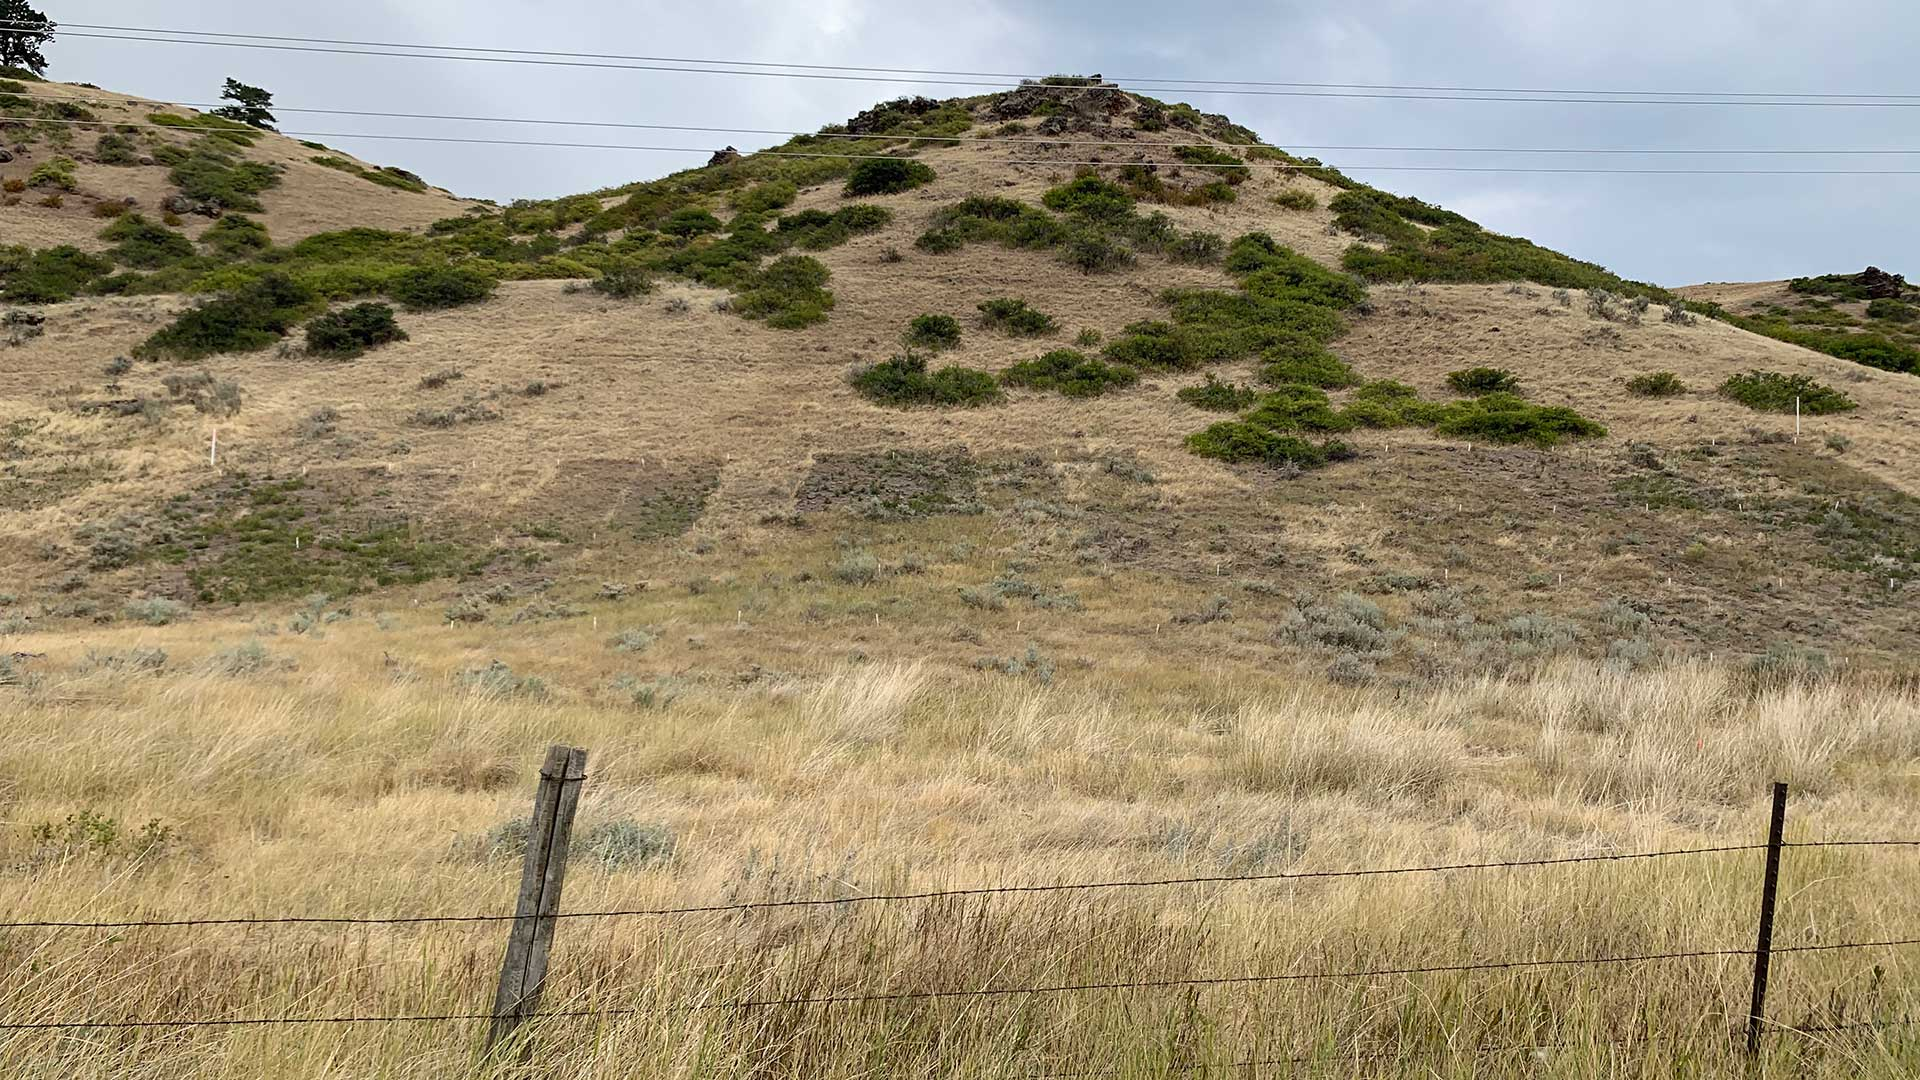 Eighteen plots are laid out on the hillside on Brian Mealor's property in Sheridan County, Wyo. Mealor is studying how differing amounts of herbicide sprayed at different times of year can be used to manage invasive species.